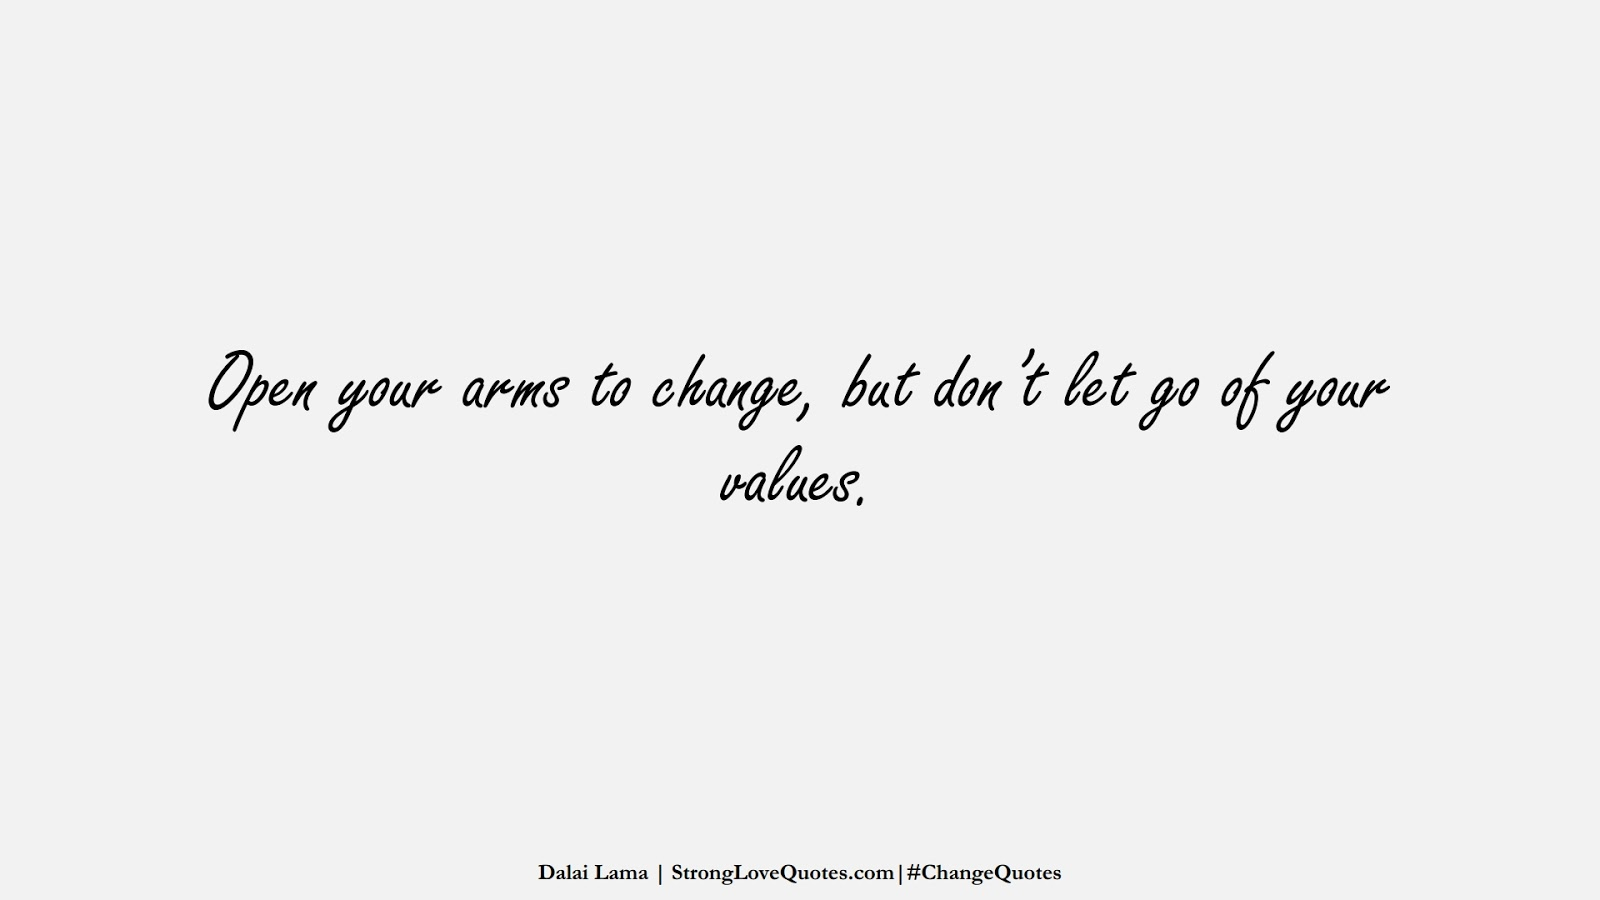 Open your arms to change, but don't let go of your values. (Dalai Lama);  #ChangeQuotes